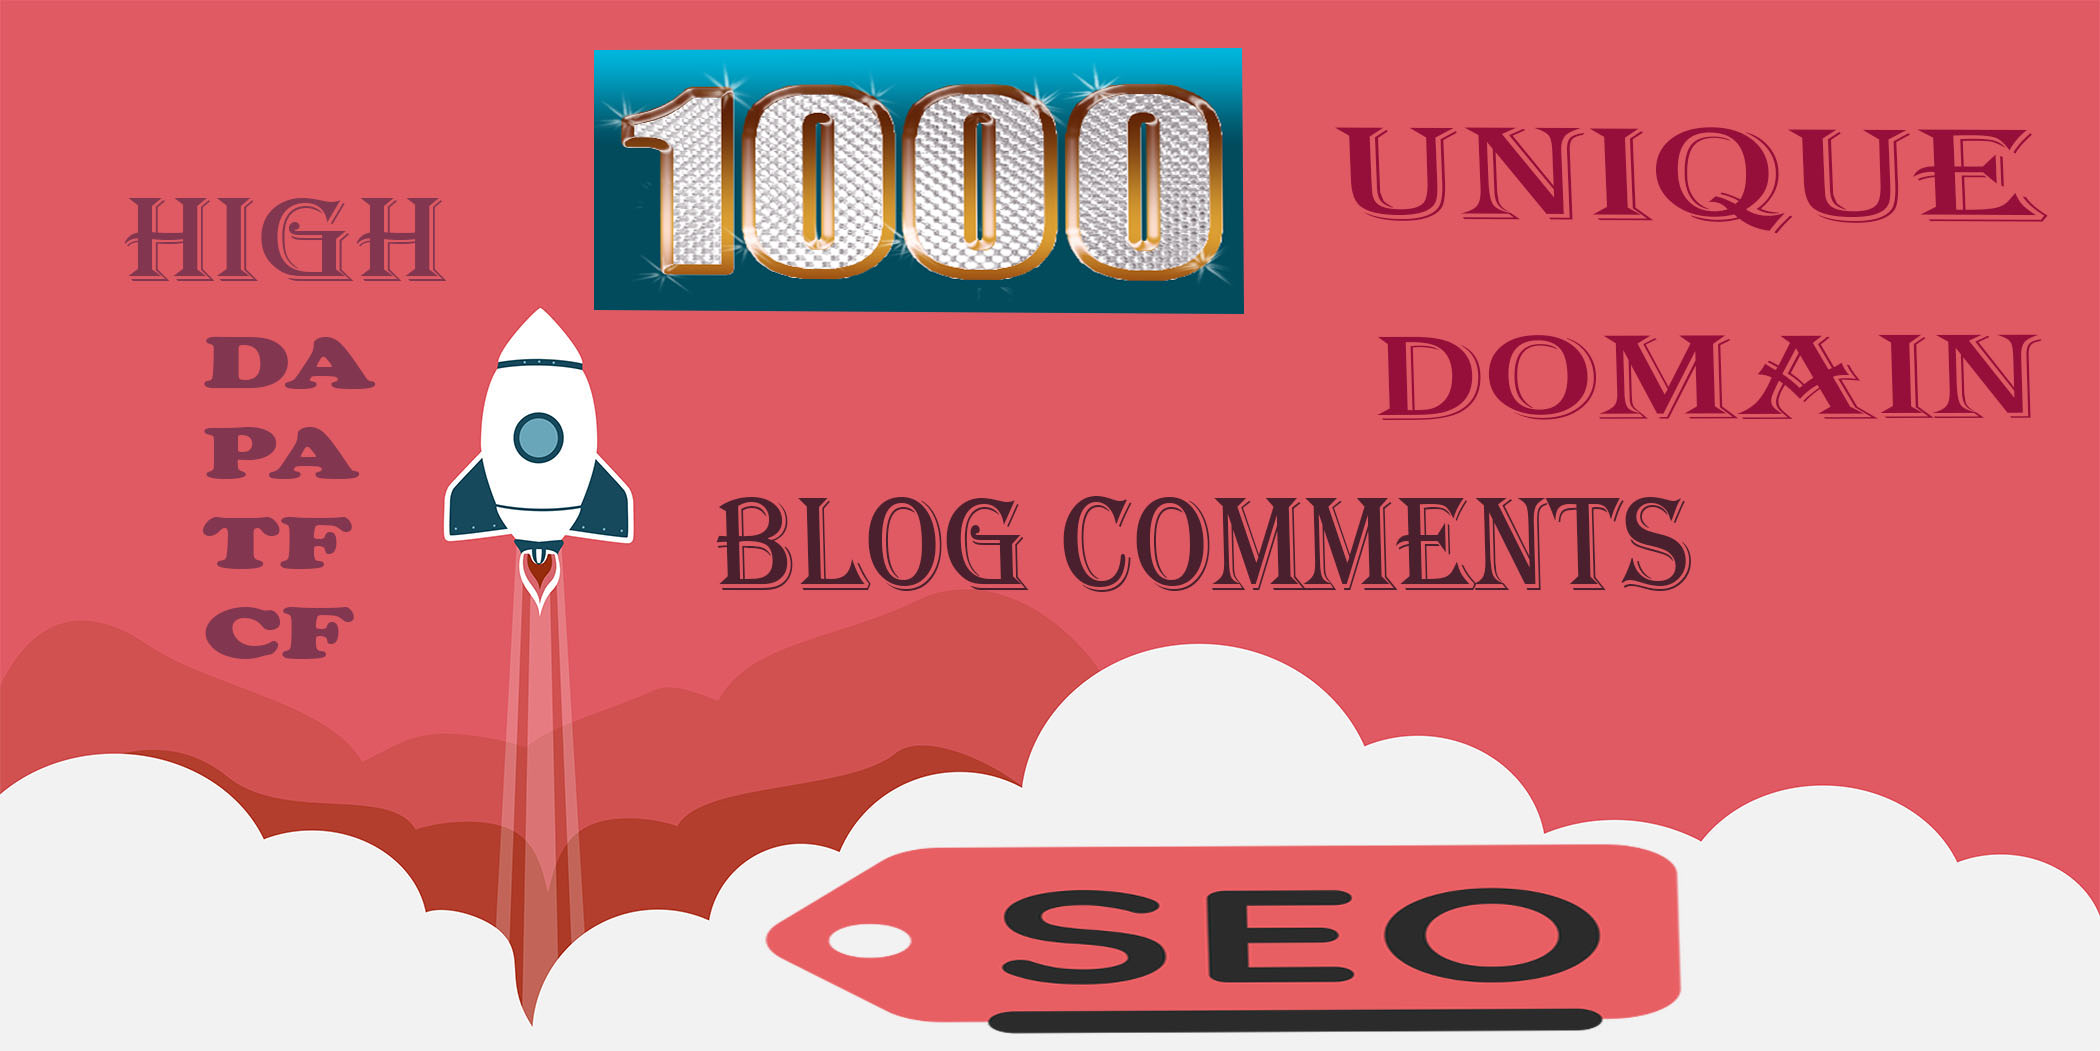 I will skyrocket your website with 1000 Unique Domain Blog Comments on High DA/PA/TF/CF Sites